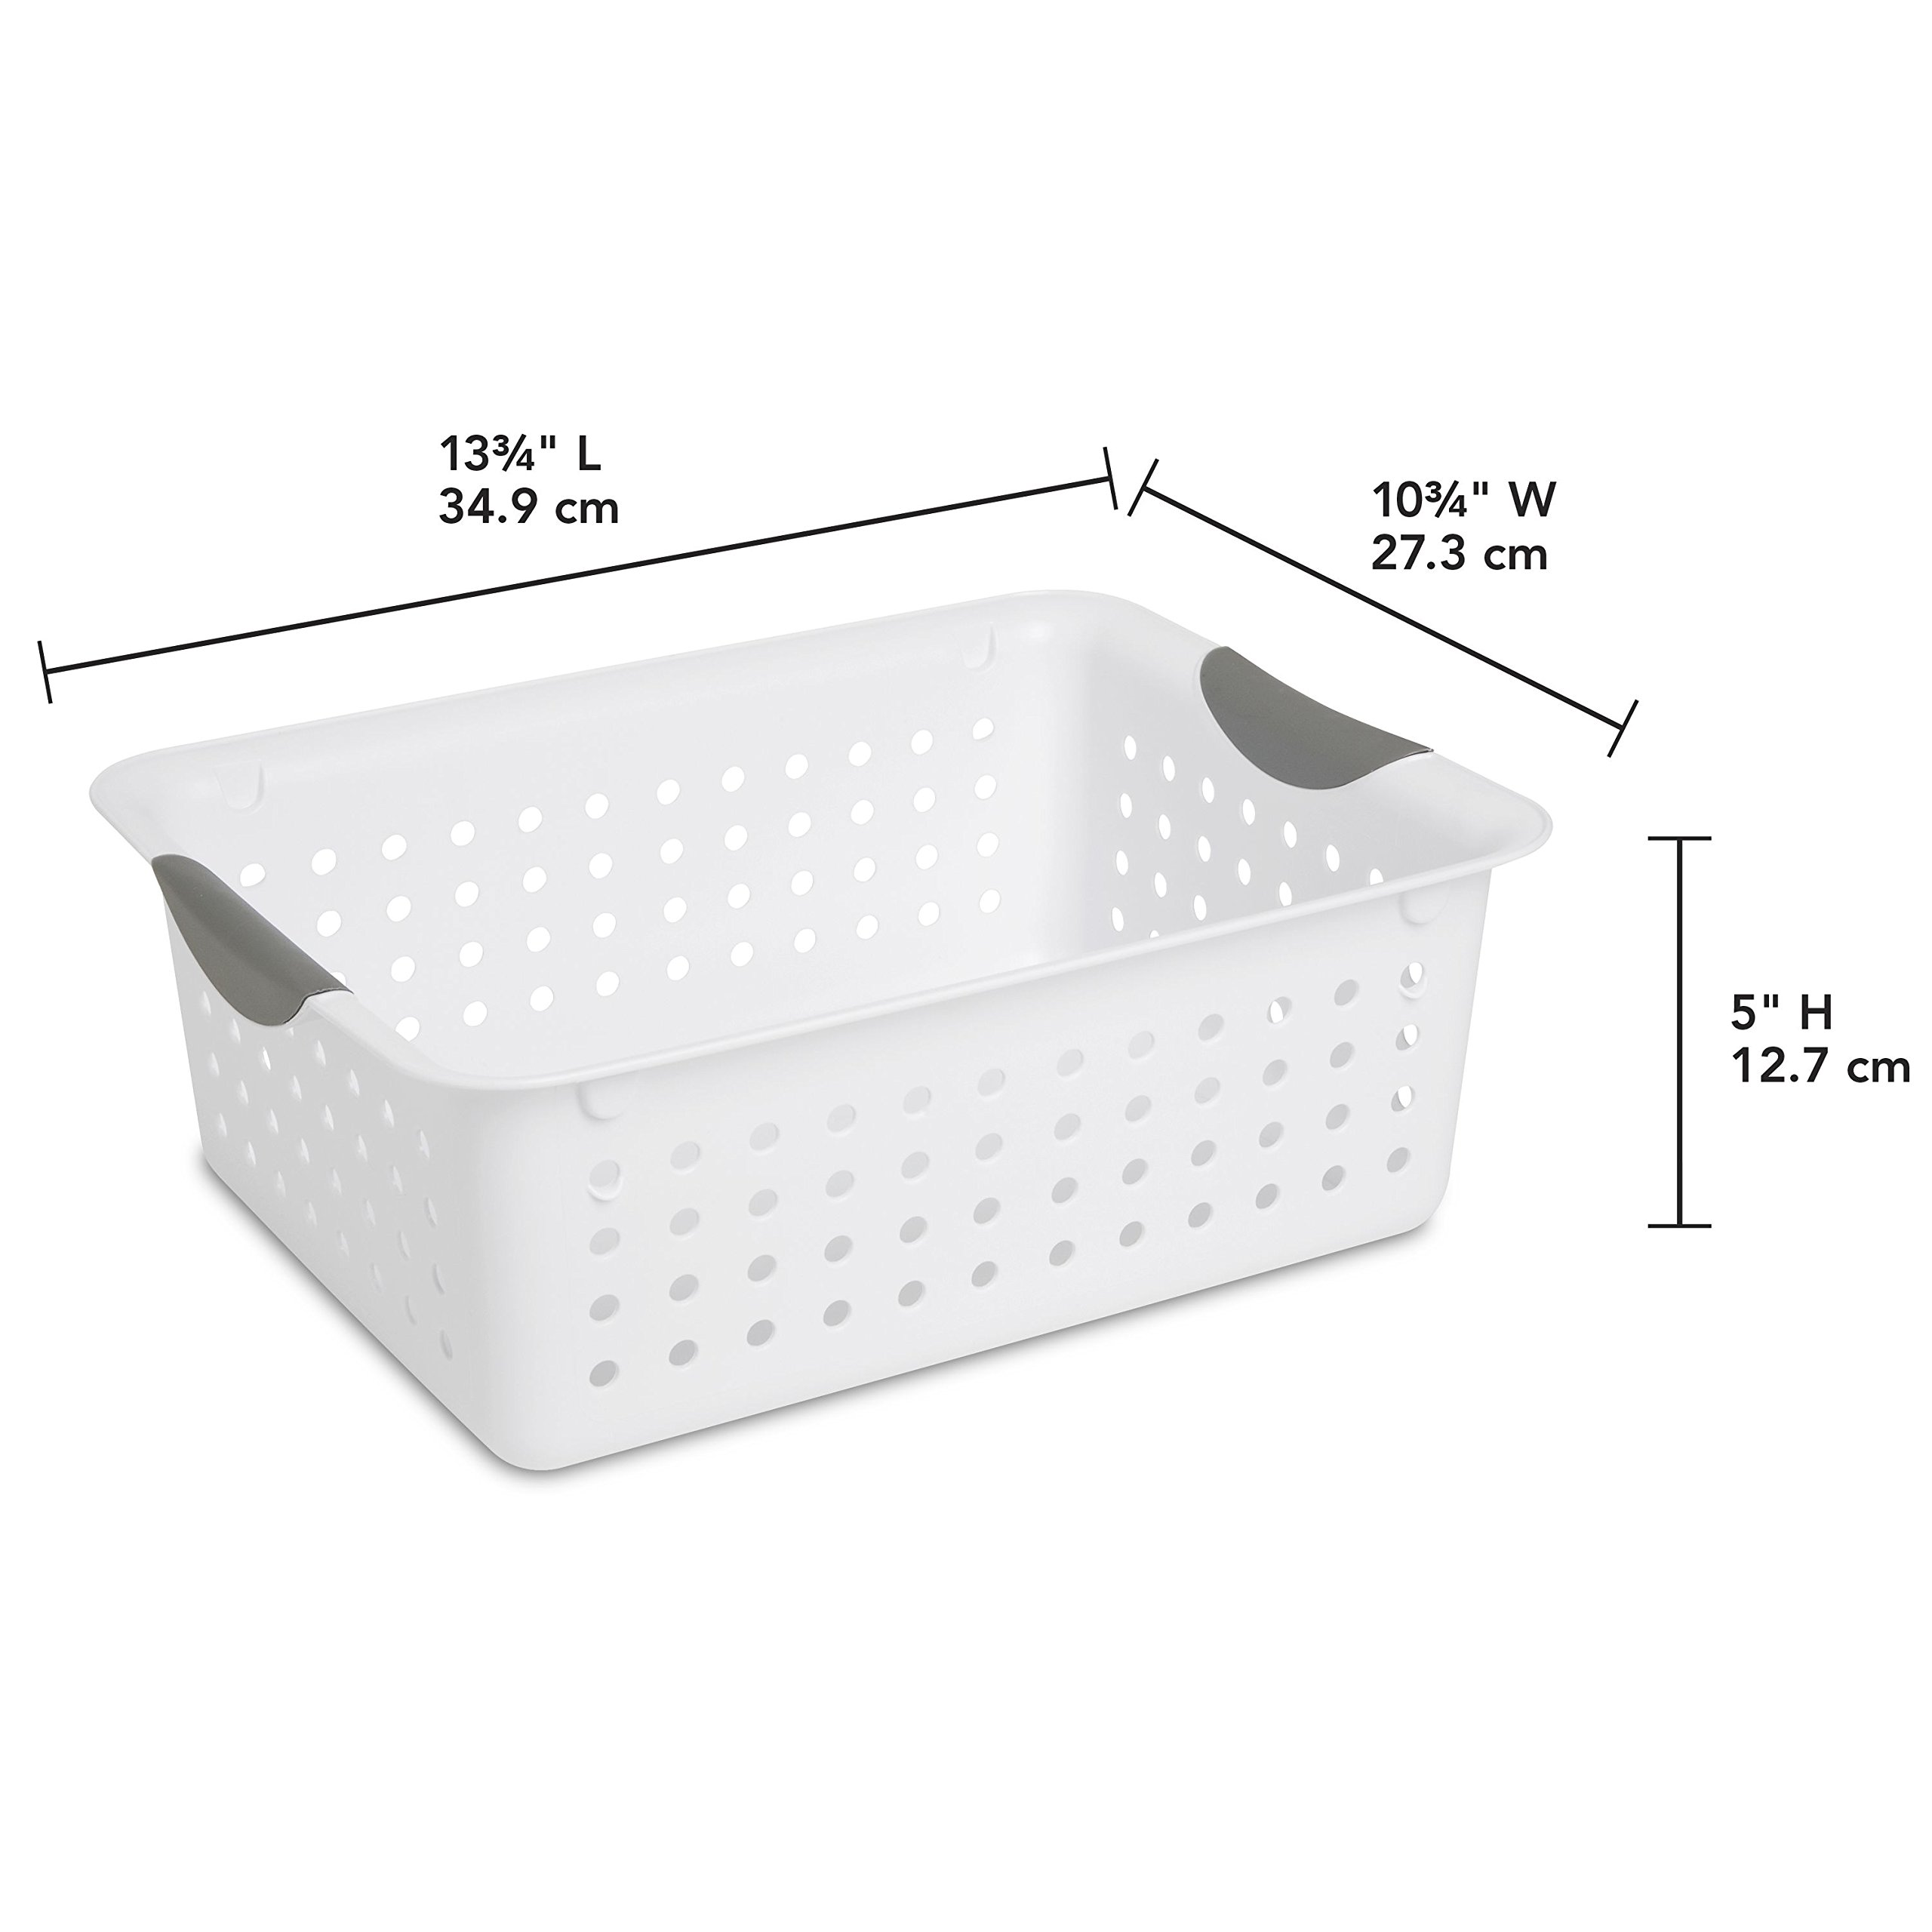 STERILITE 16248006 Medium Ultra Basket, White Basket w/Titanium Inserts, 6-Pack by STERILITE (Image #3)